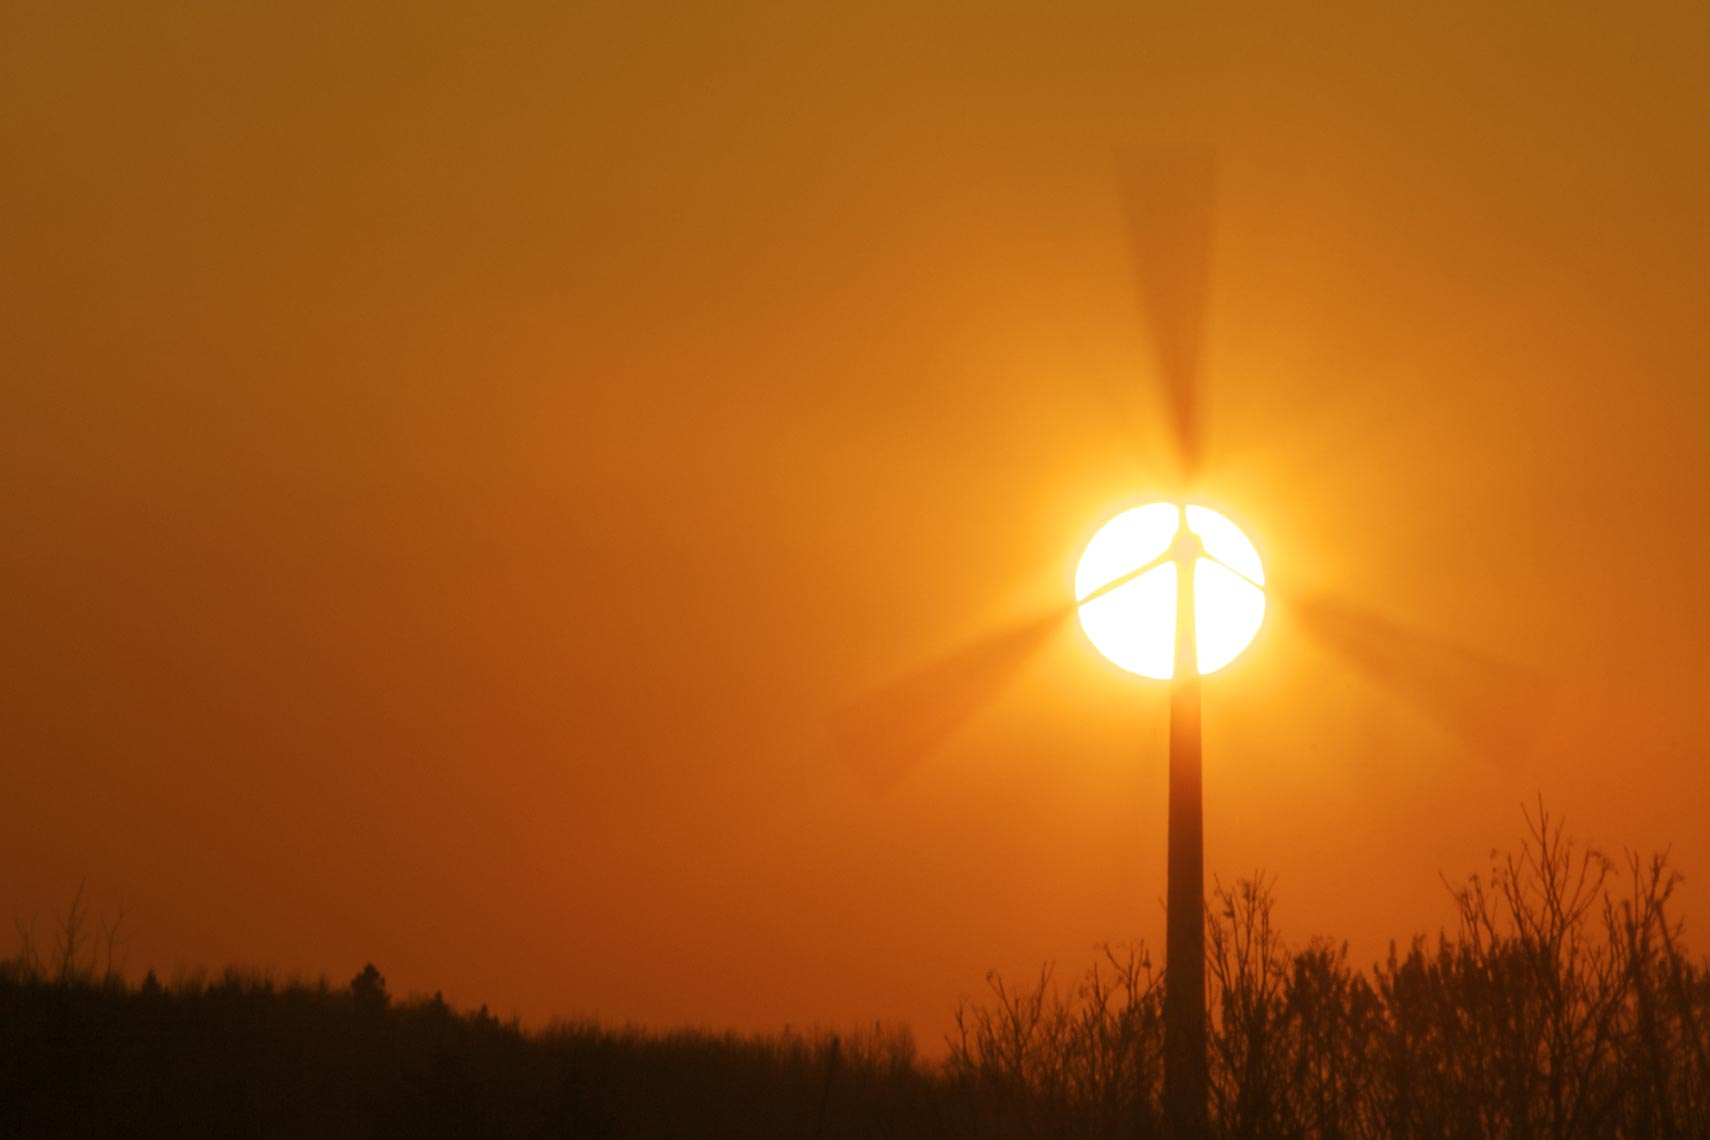 wind-turbine-sunset-Canada.jpg